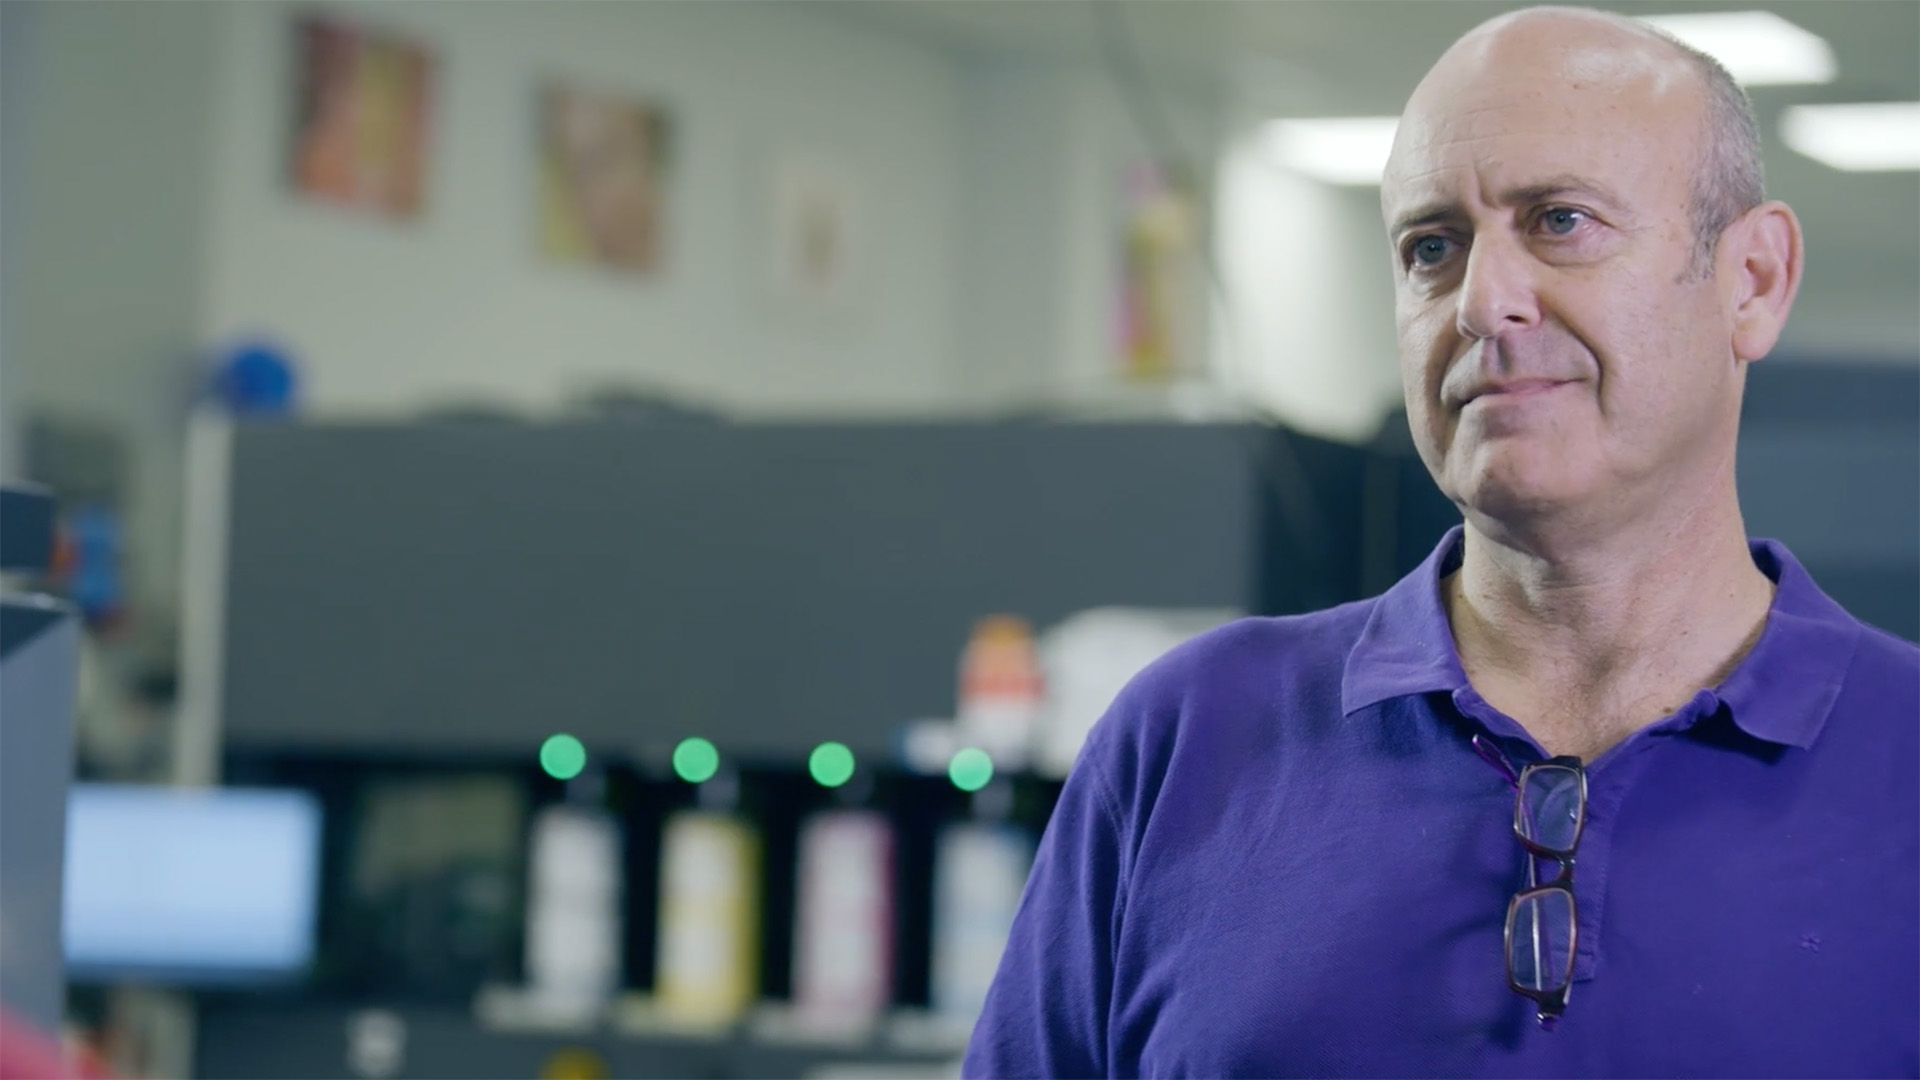 Video preview: The Feeding System for the 100K Digital Press